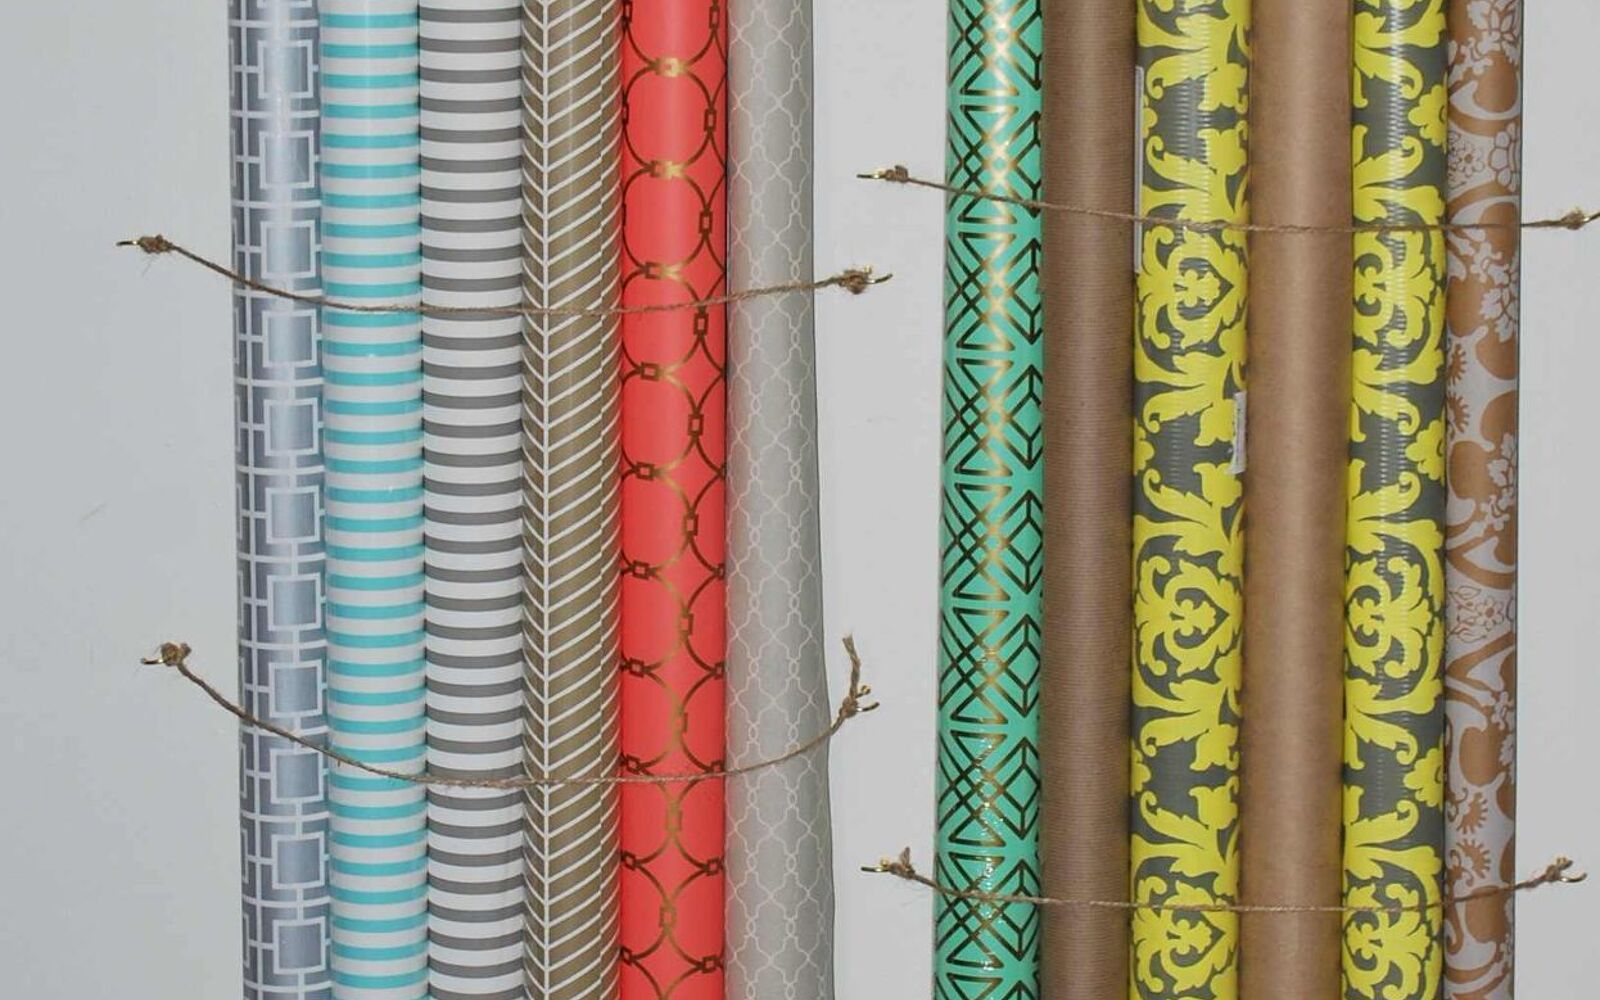 s 32 space saving storage ideas that ll keep your home organized, Put your gift wrap on the wall